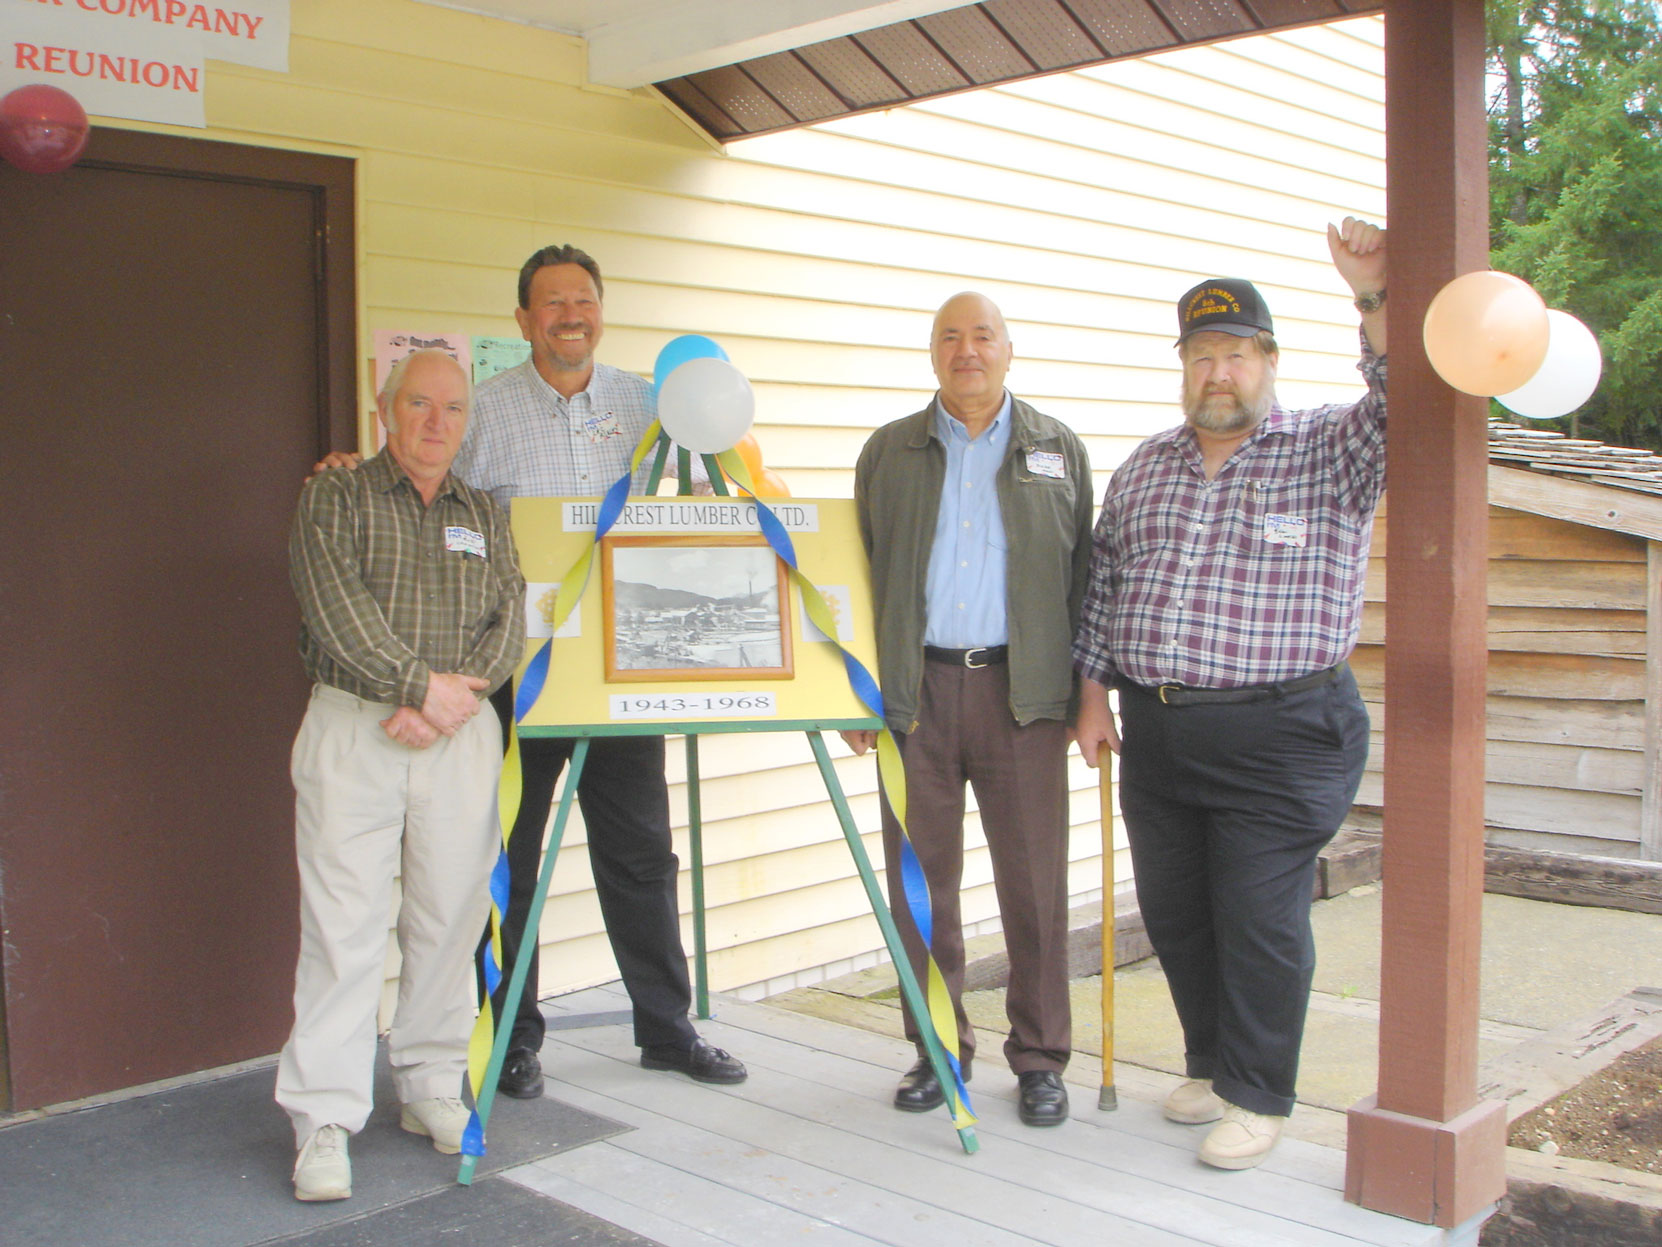 Bob Crawford (left), Cecil Ashley and others at the Hillcrest Lumber Co. Employees Reunion in 2006. (photo courtesy of Cecil Ashley)